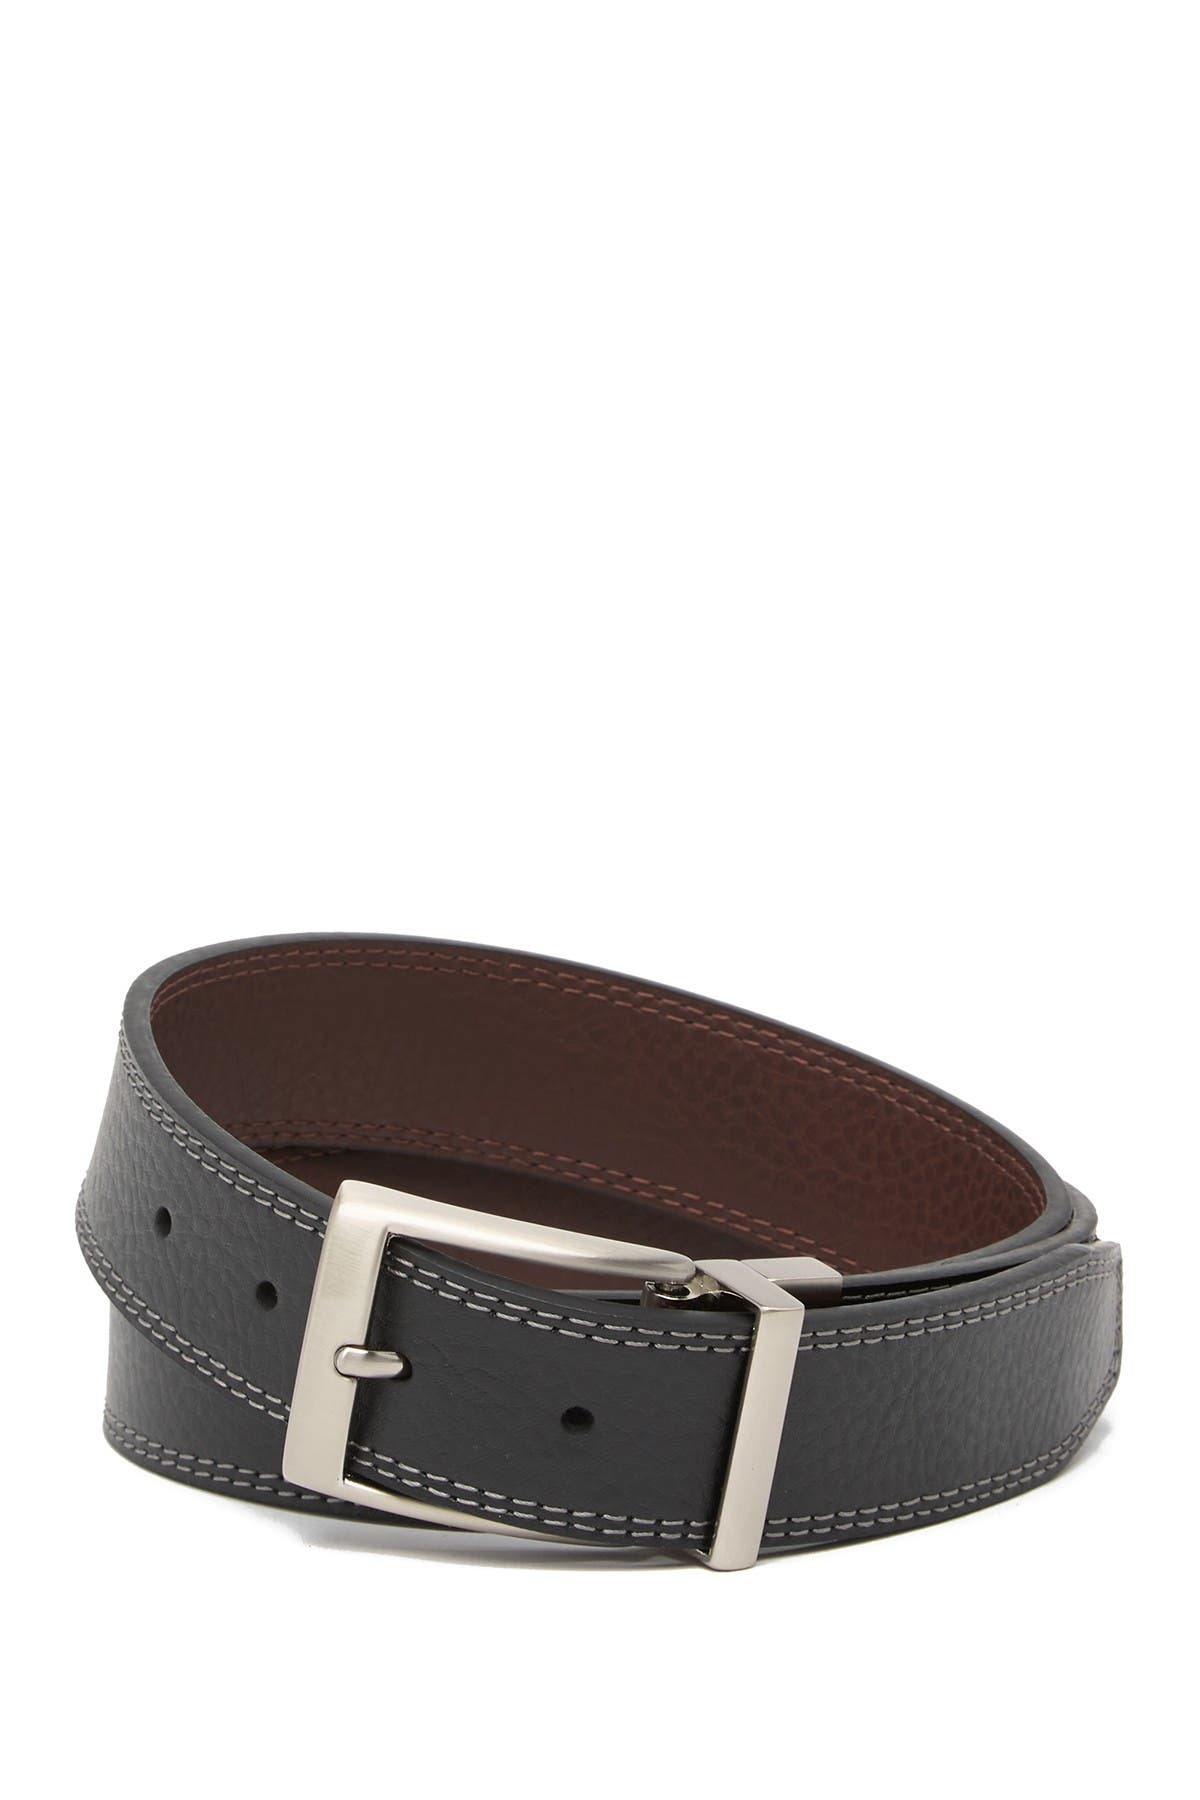 Image of Nike Reversible Contrast Double Stitch Leather Belt